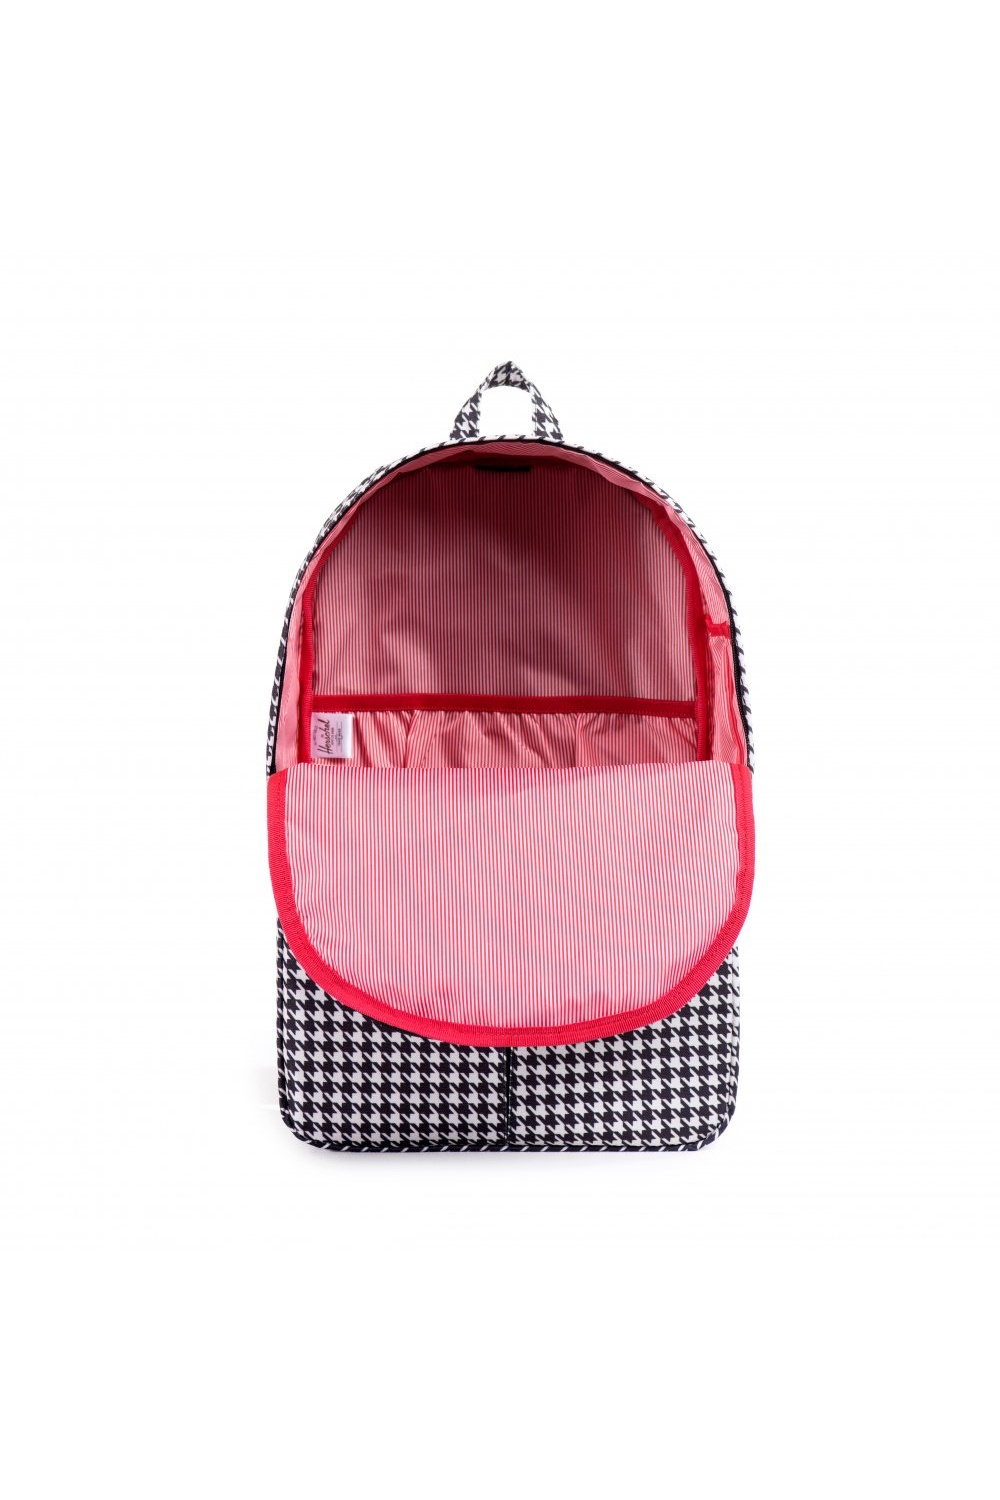 3953cff9f56 Herschel Supply Co Parker Backpack (Houndstooth) - Accessories from ...